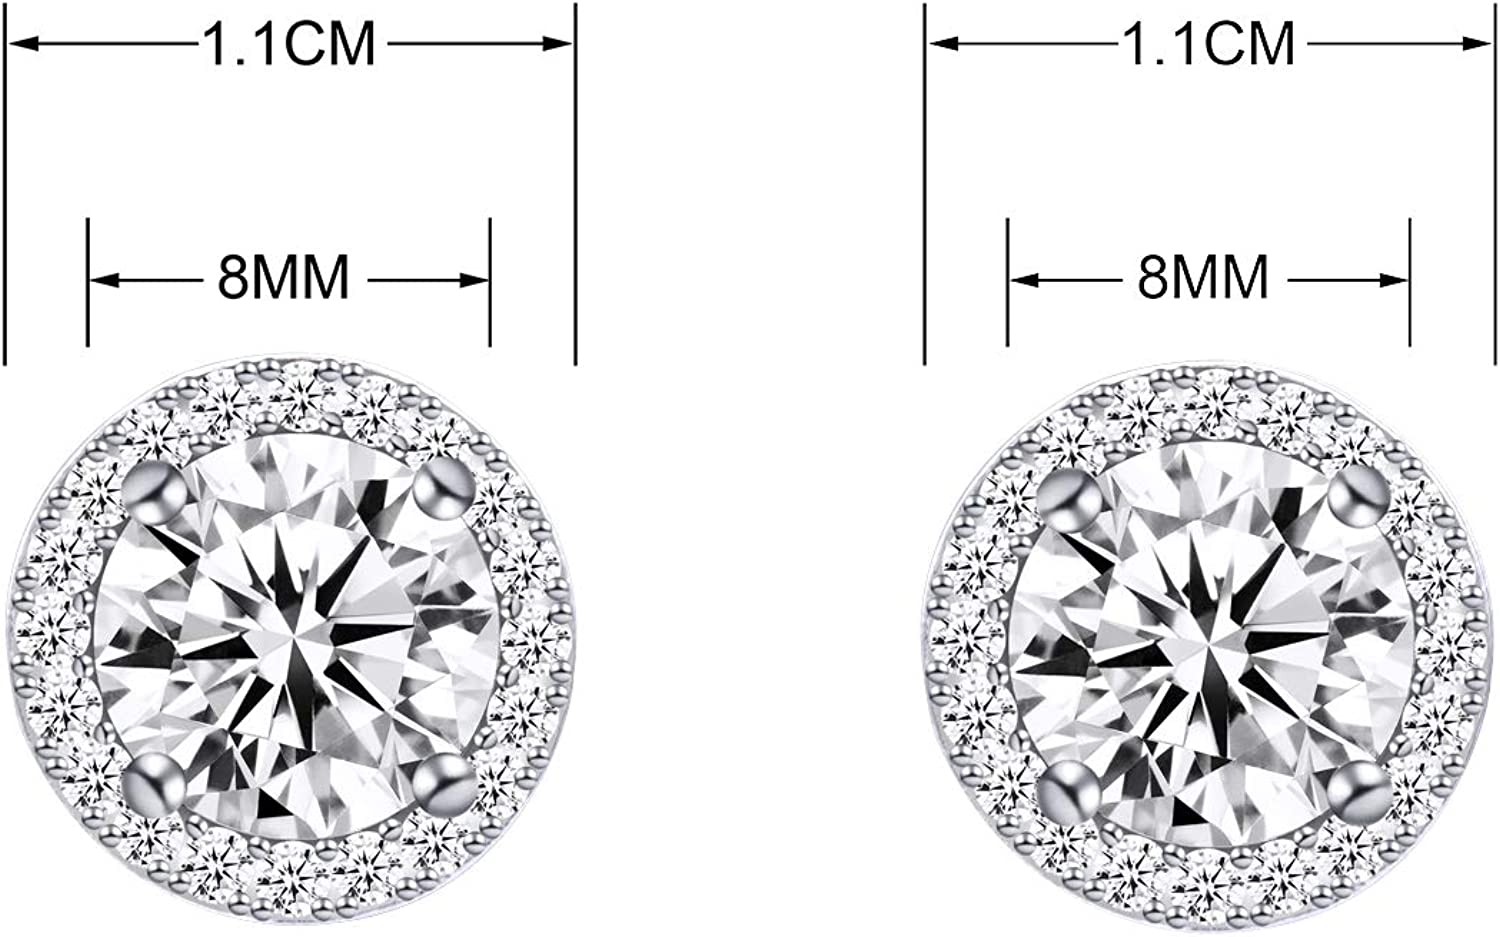 YOQUCOL Bright 8MM,10MM Cubic Zirconia Crystal Clip On Stud Round Non-Pierced,Pierced Earrings For Women Girls